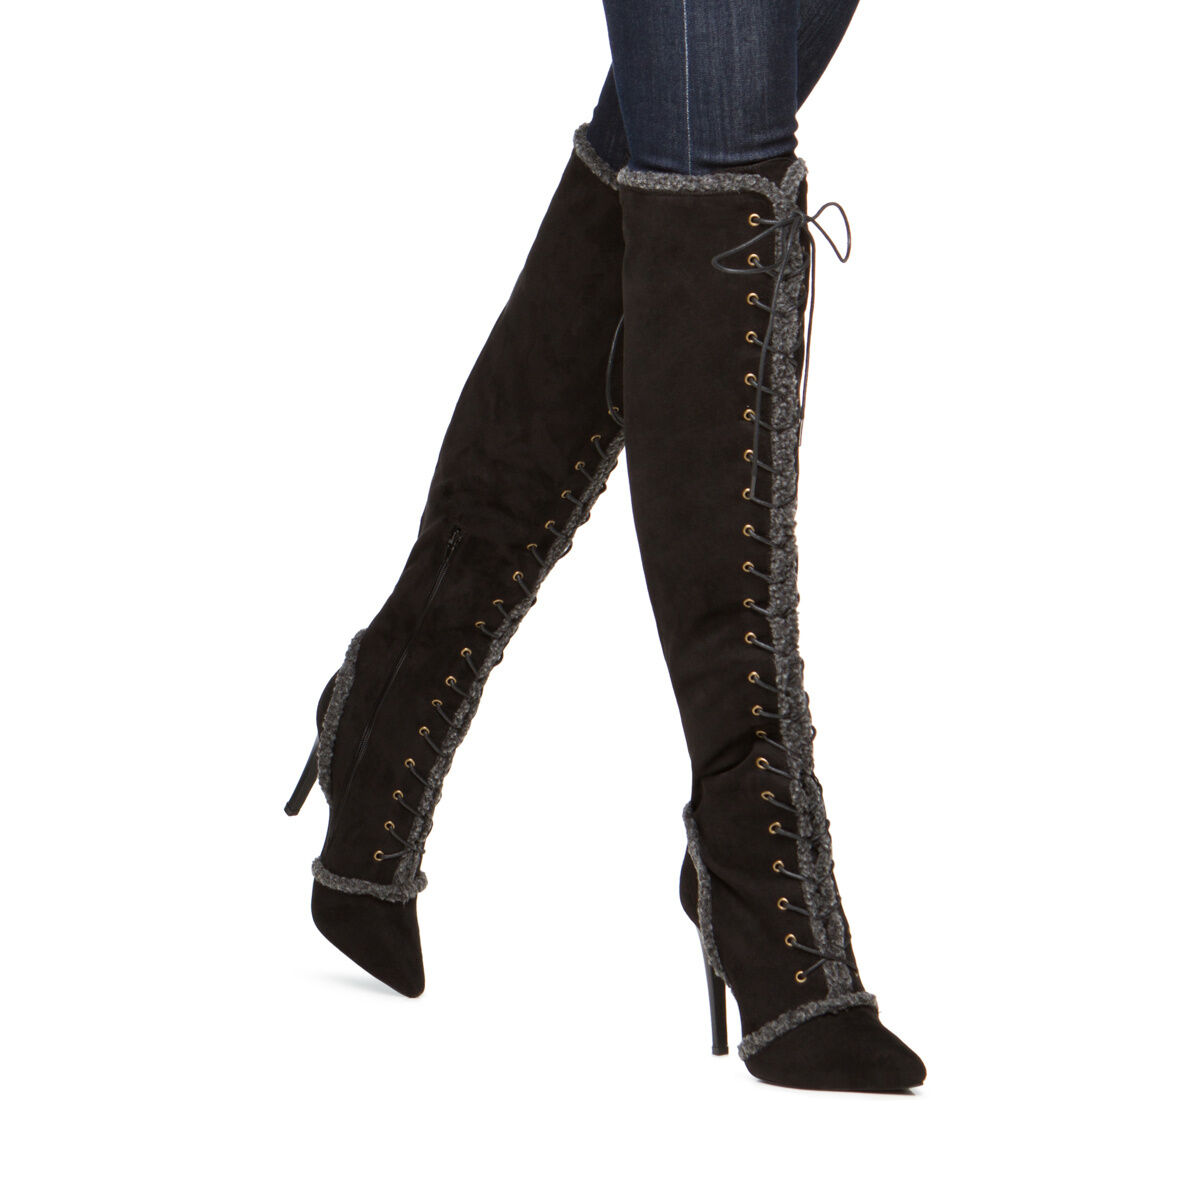 NEW w/ Lace-up Pointed-Toe Over-the-Knee Stiefel w/ NEW Faux-Shearling Accents Größe 8 c305e9